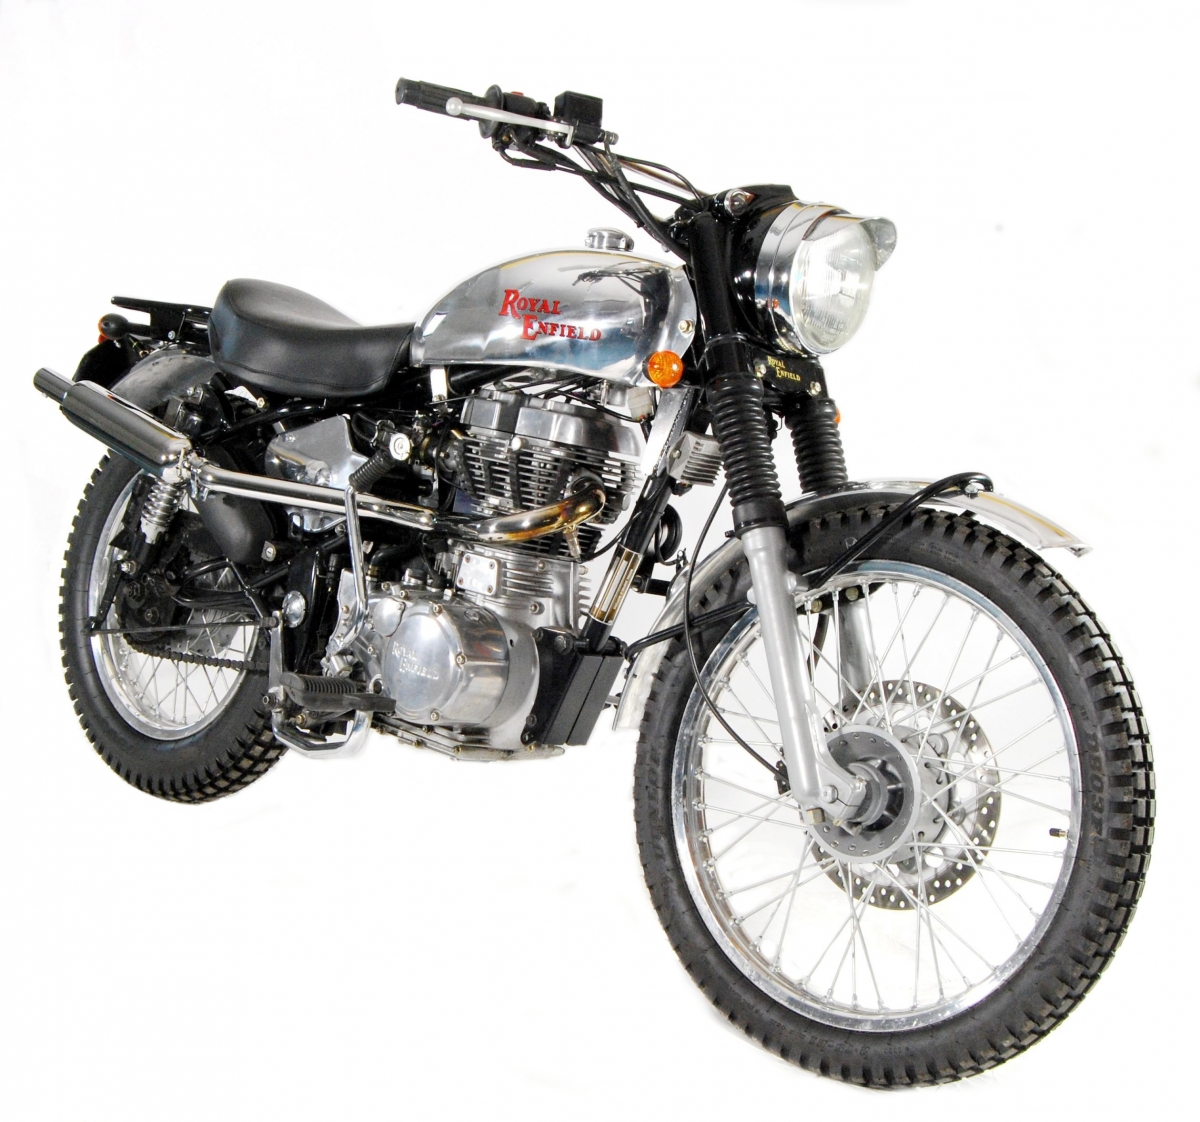 Royal Enfield Bullet 500 ES Deluxe 2006 images #123721